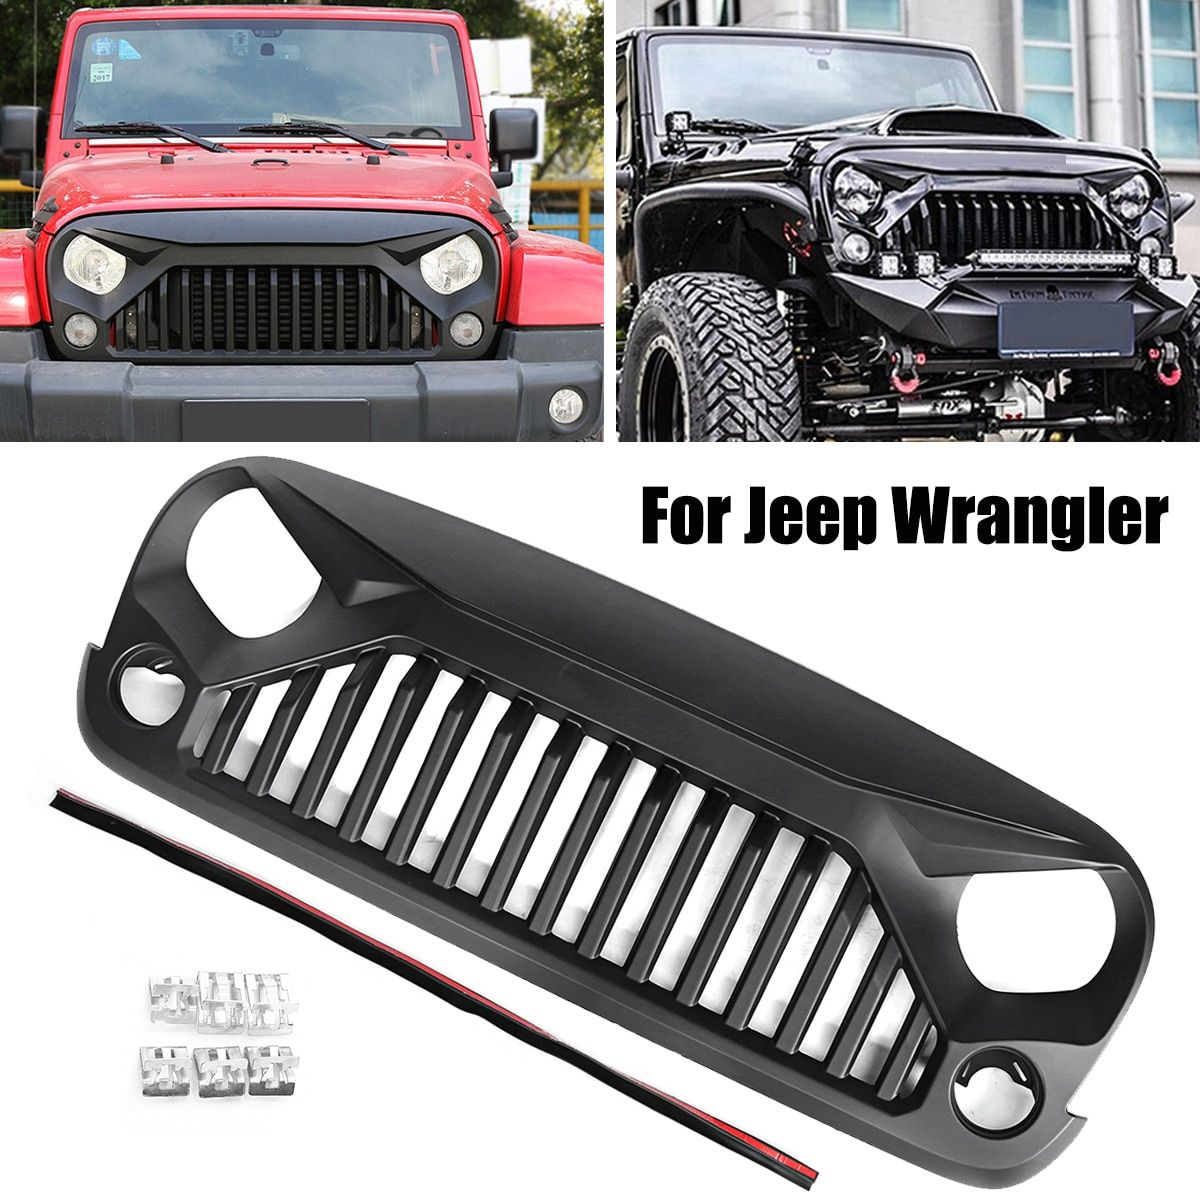 Car Racing Grills Insert Mesh Bumper Grille Circle Front Auto Grills for Jeep 2007-2017 for Wrangler JK V2 Front Hood Grille